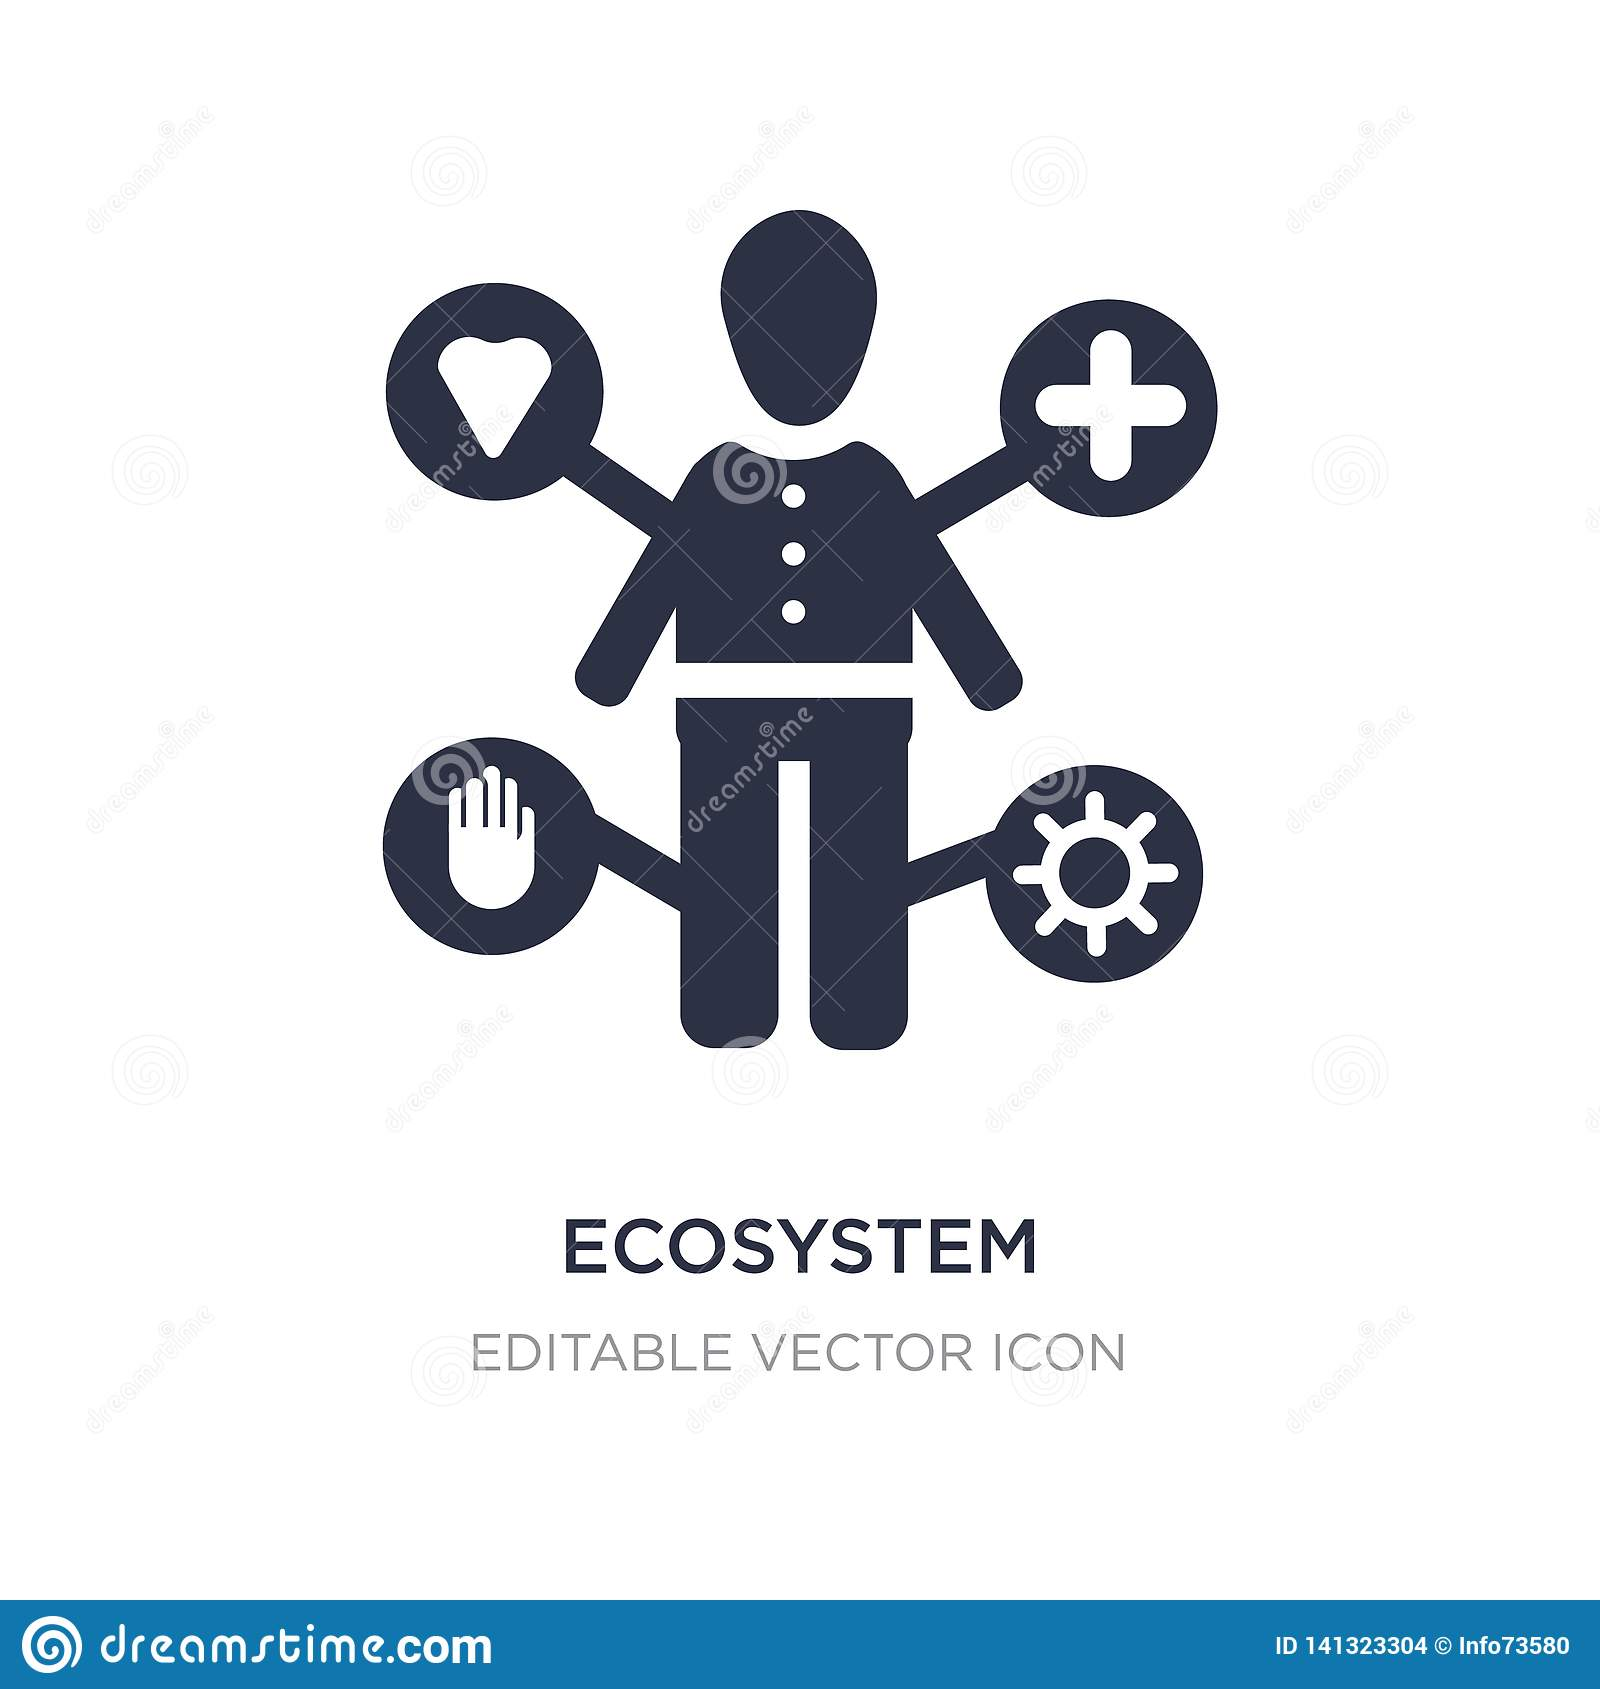 ecosystem icon on white background. Simple element illustration from People concept